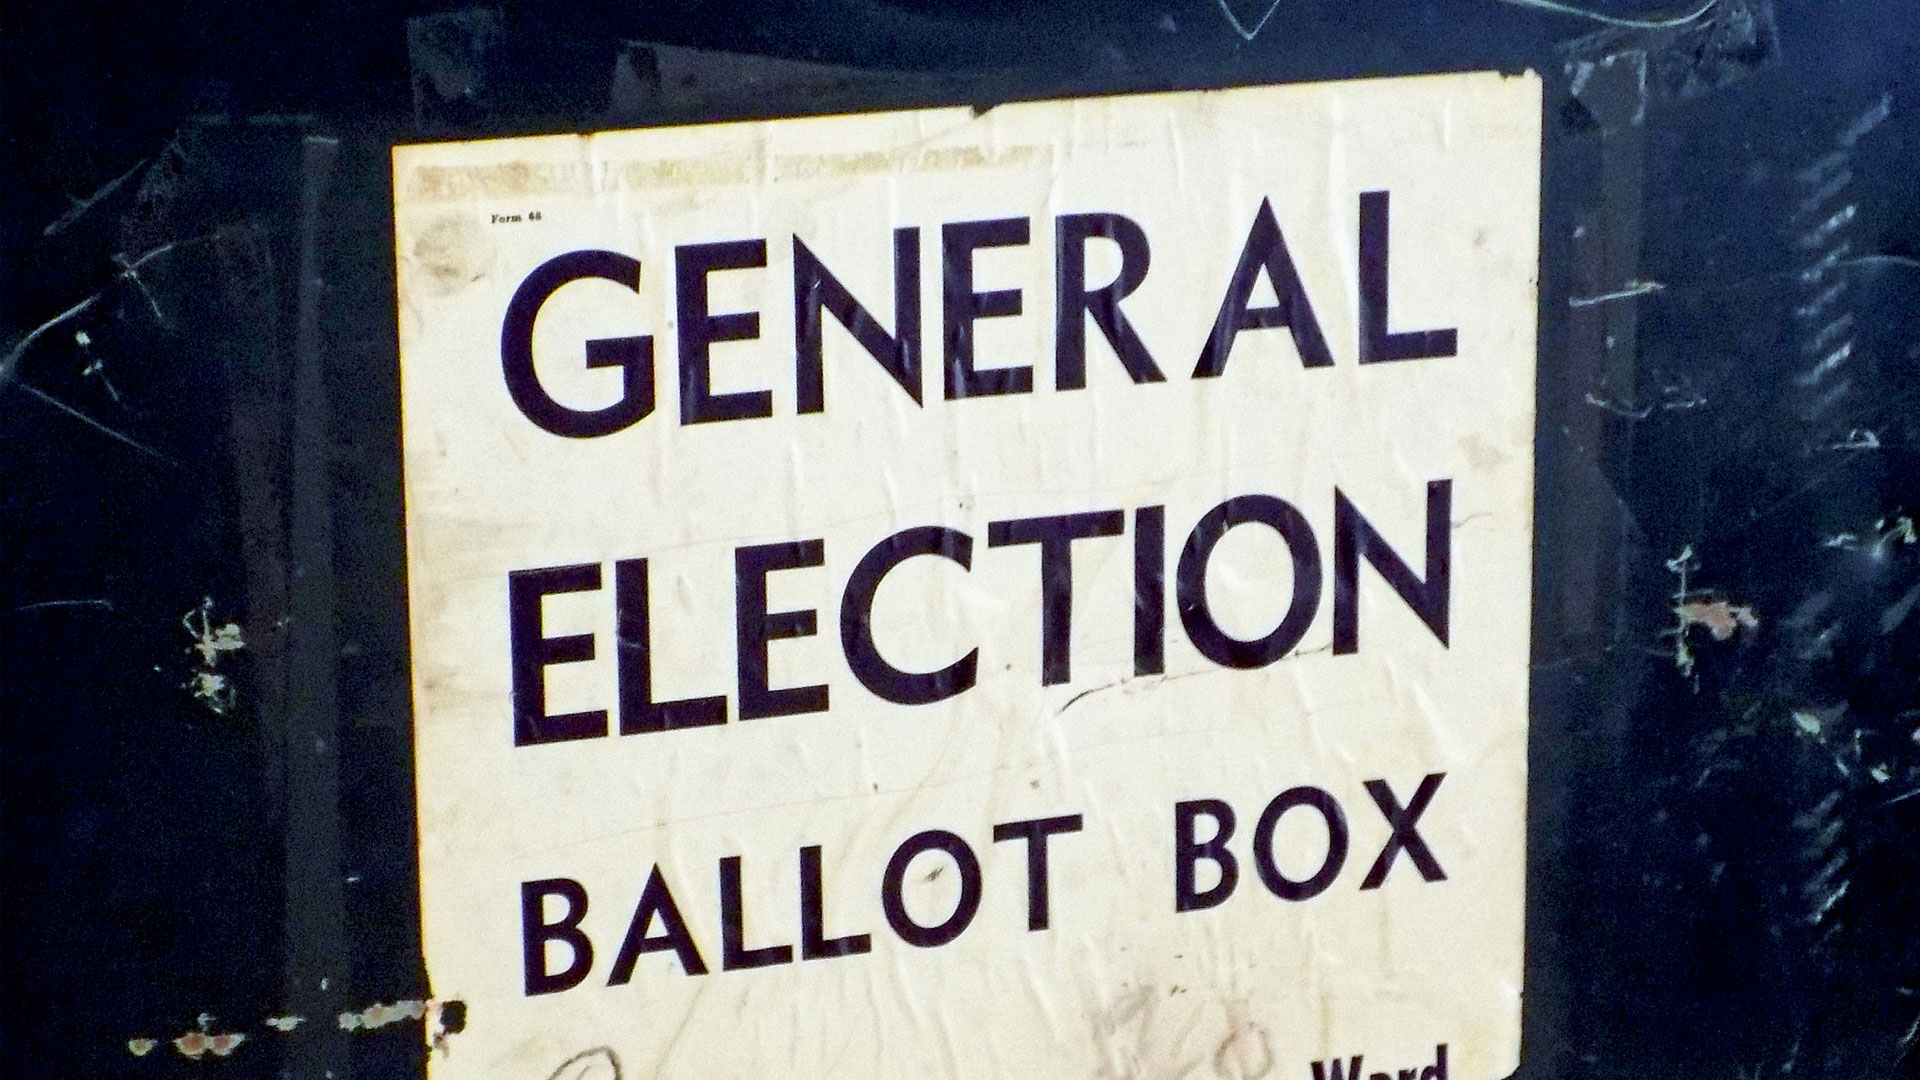 A general election ballot box.